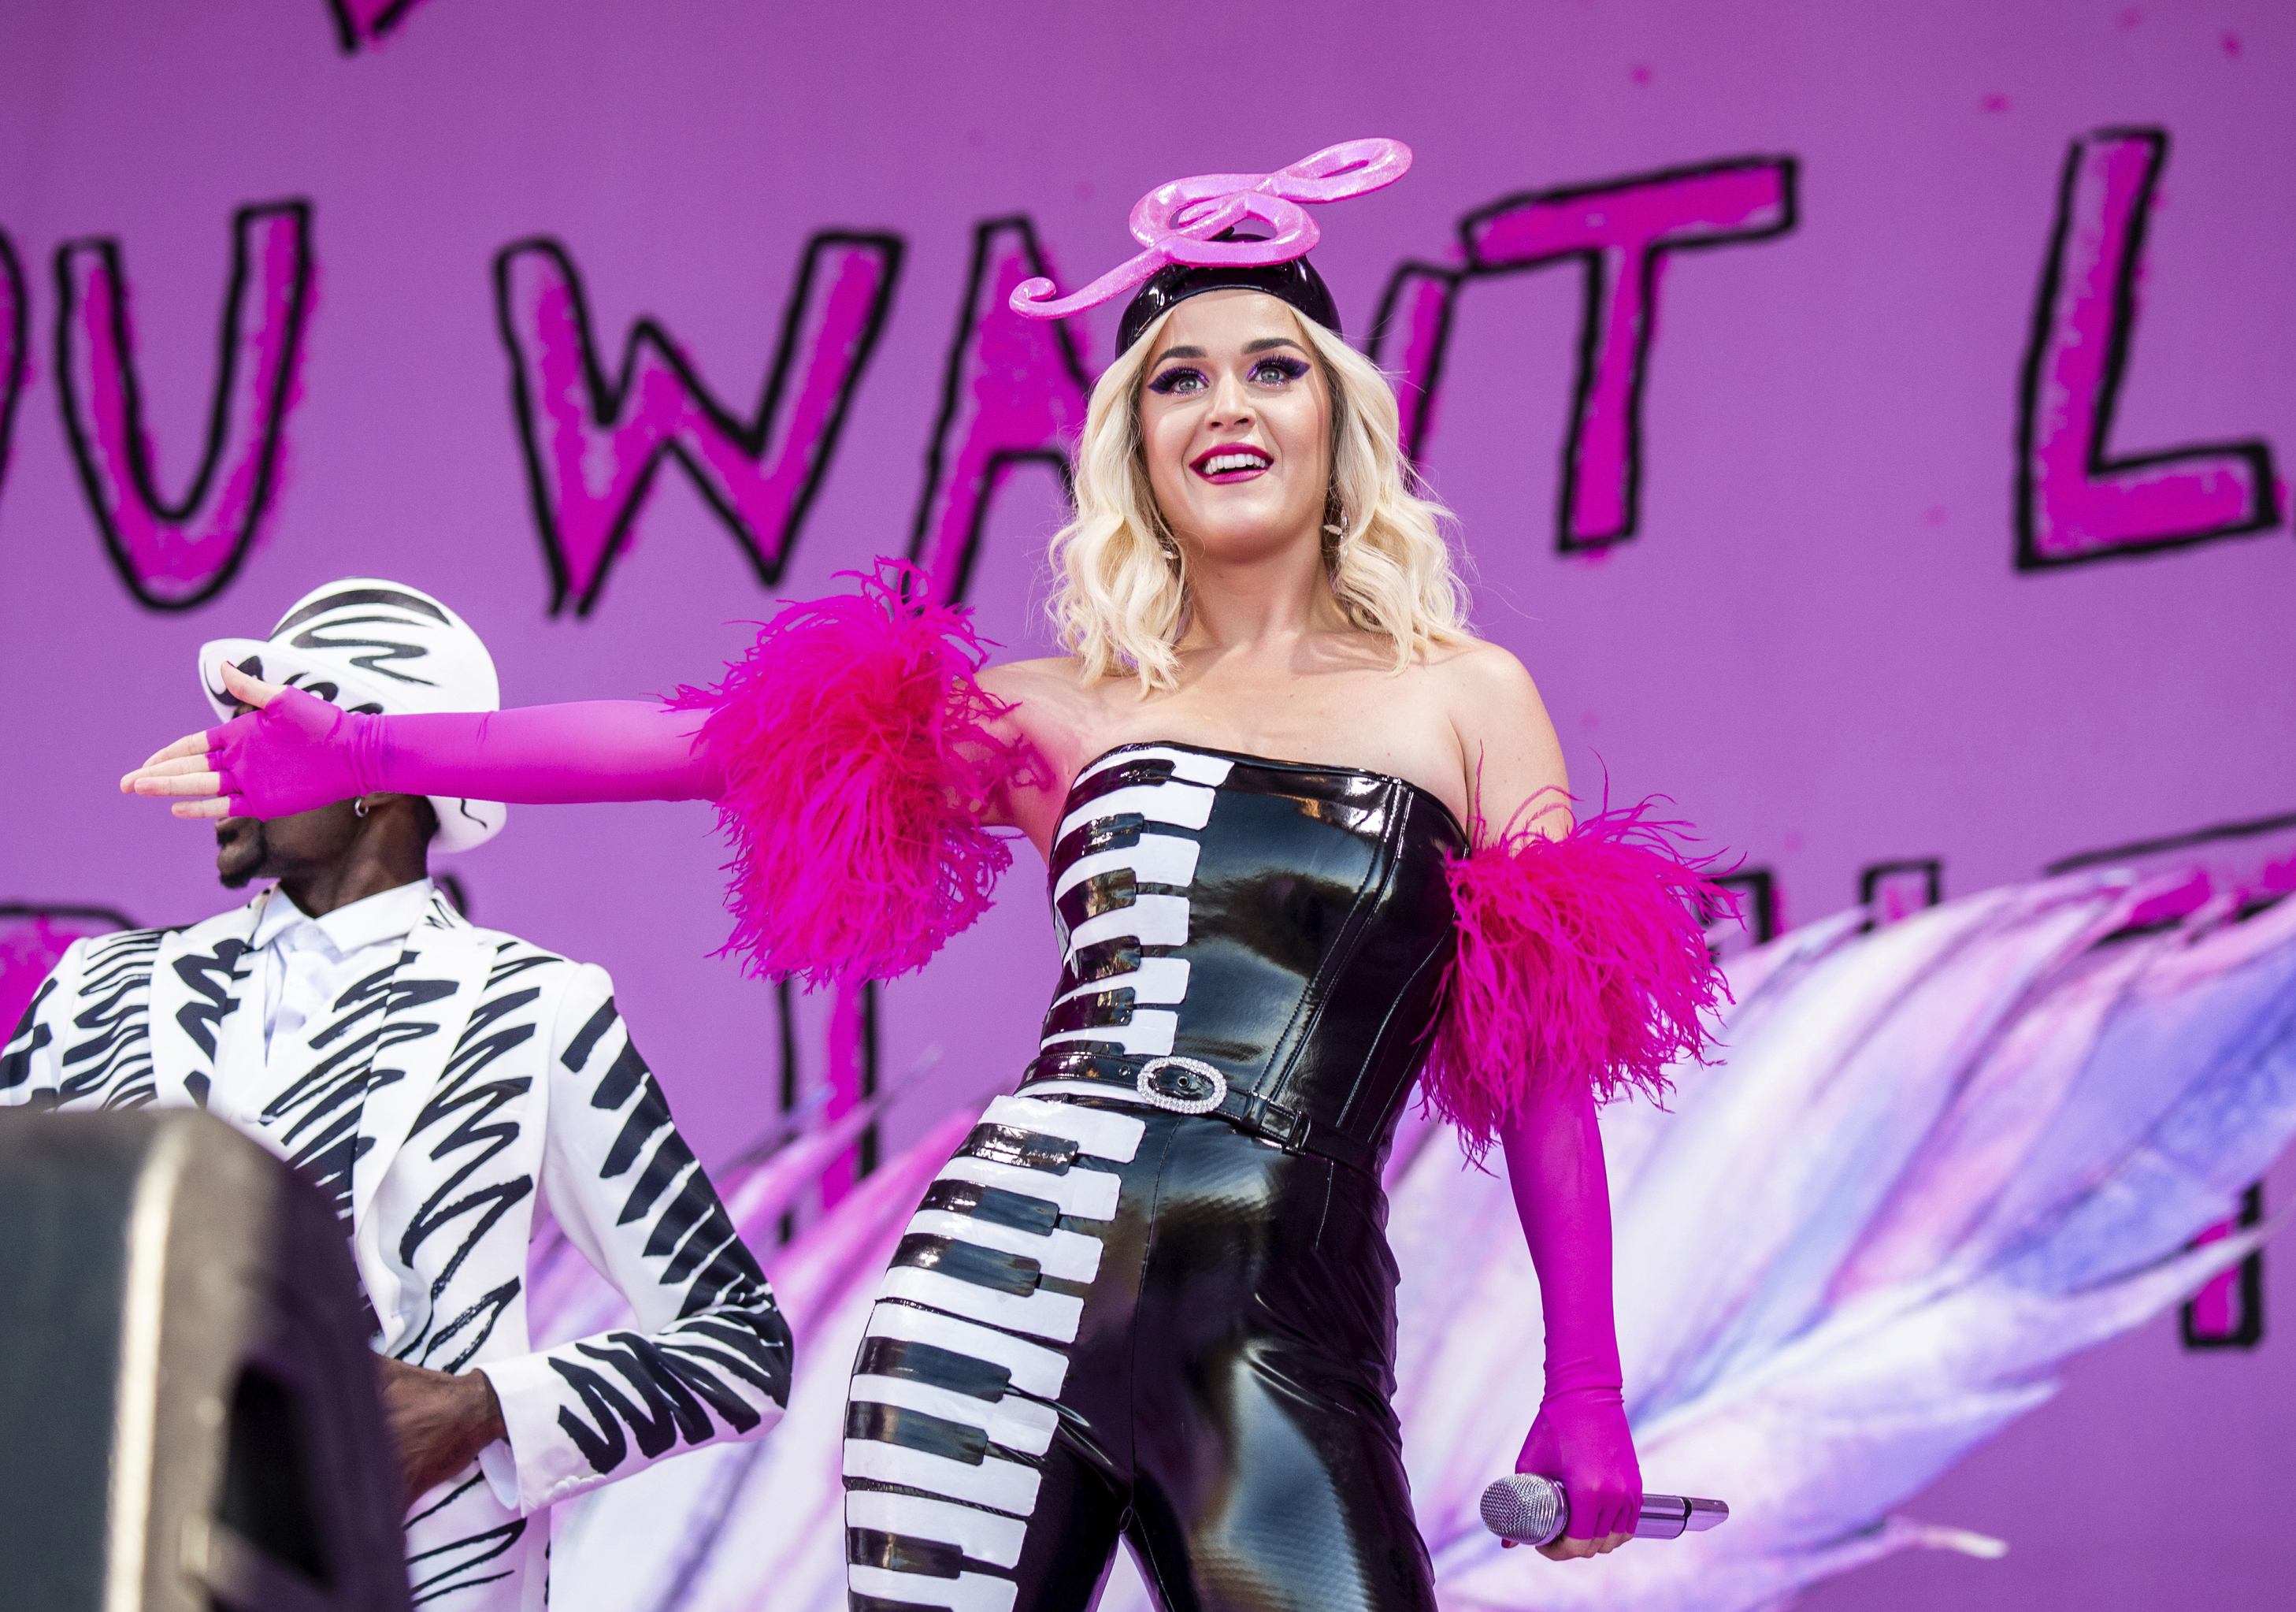 This April 27, 2019 file photo shows Katy Perry at the New Orleans Jazz and Heritage Festival in New Orleans. The penalty phase in a copyright infringement trial will begin Tuesday, July 30, 2019, in Los Angeles and will determine how much Perry and other